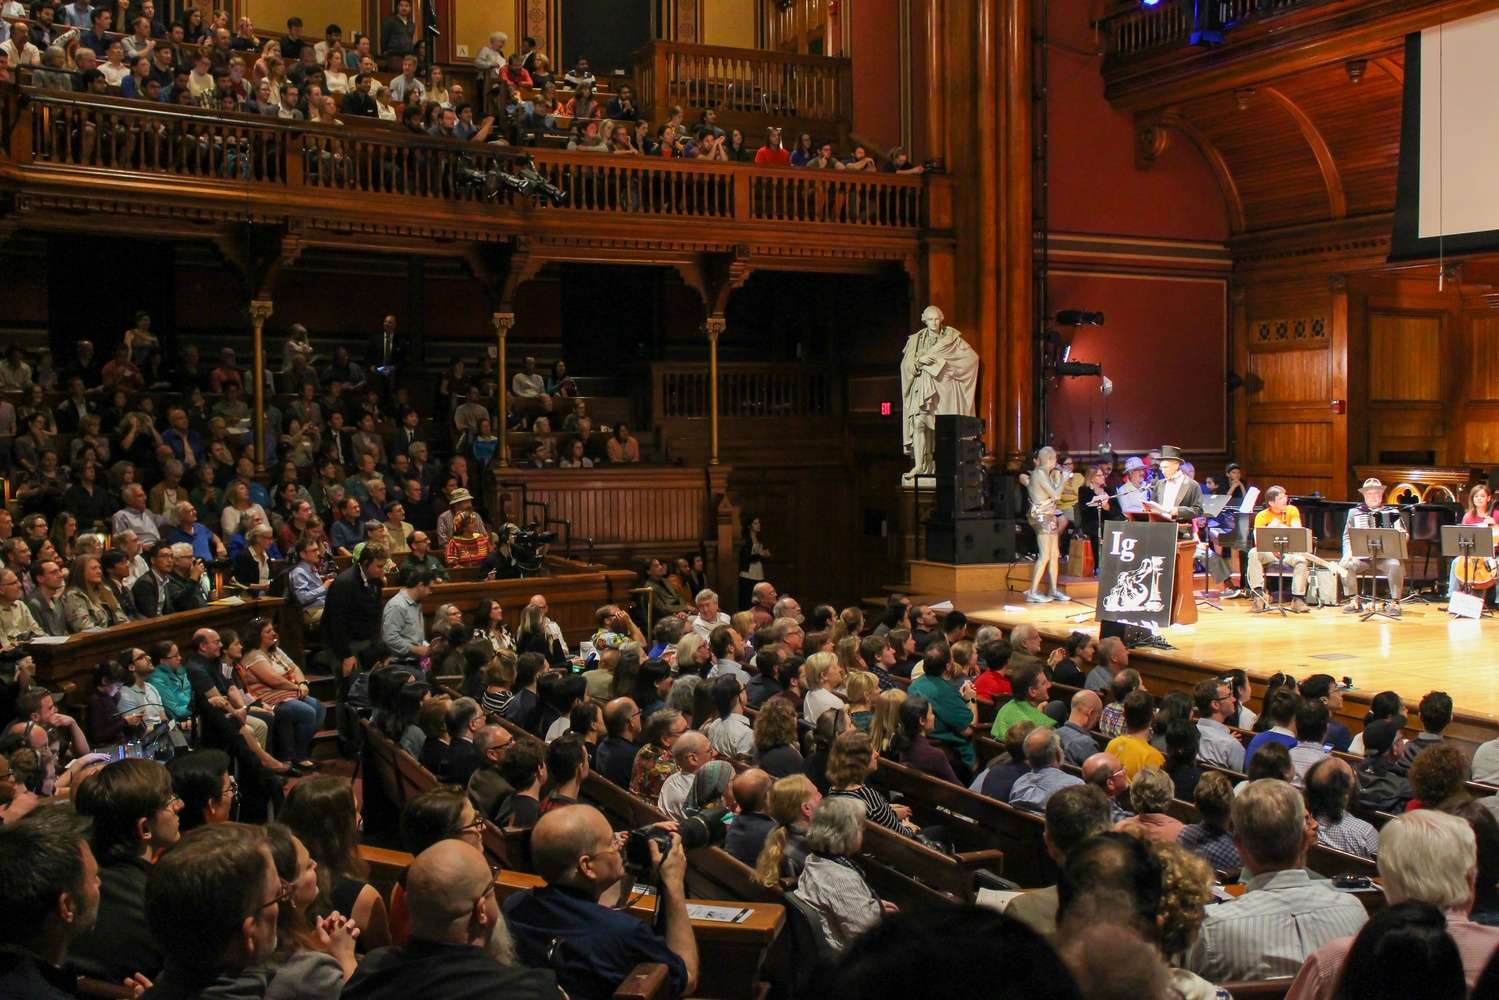 The Ig Nobel awards are presented by real Nobel laureates in a ceremony at Sanders Theater on Harvard University's campus.